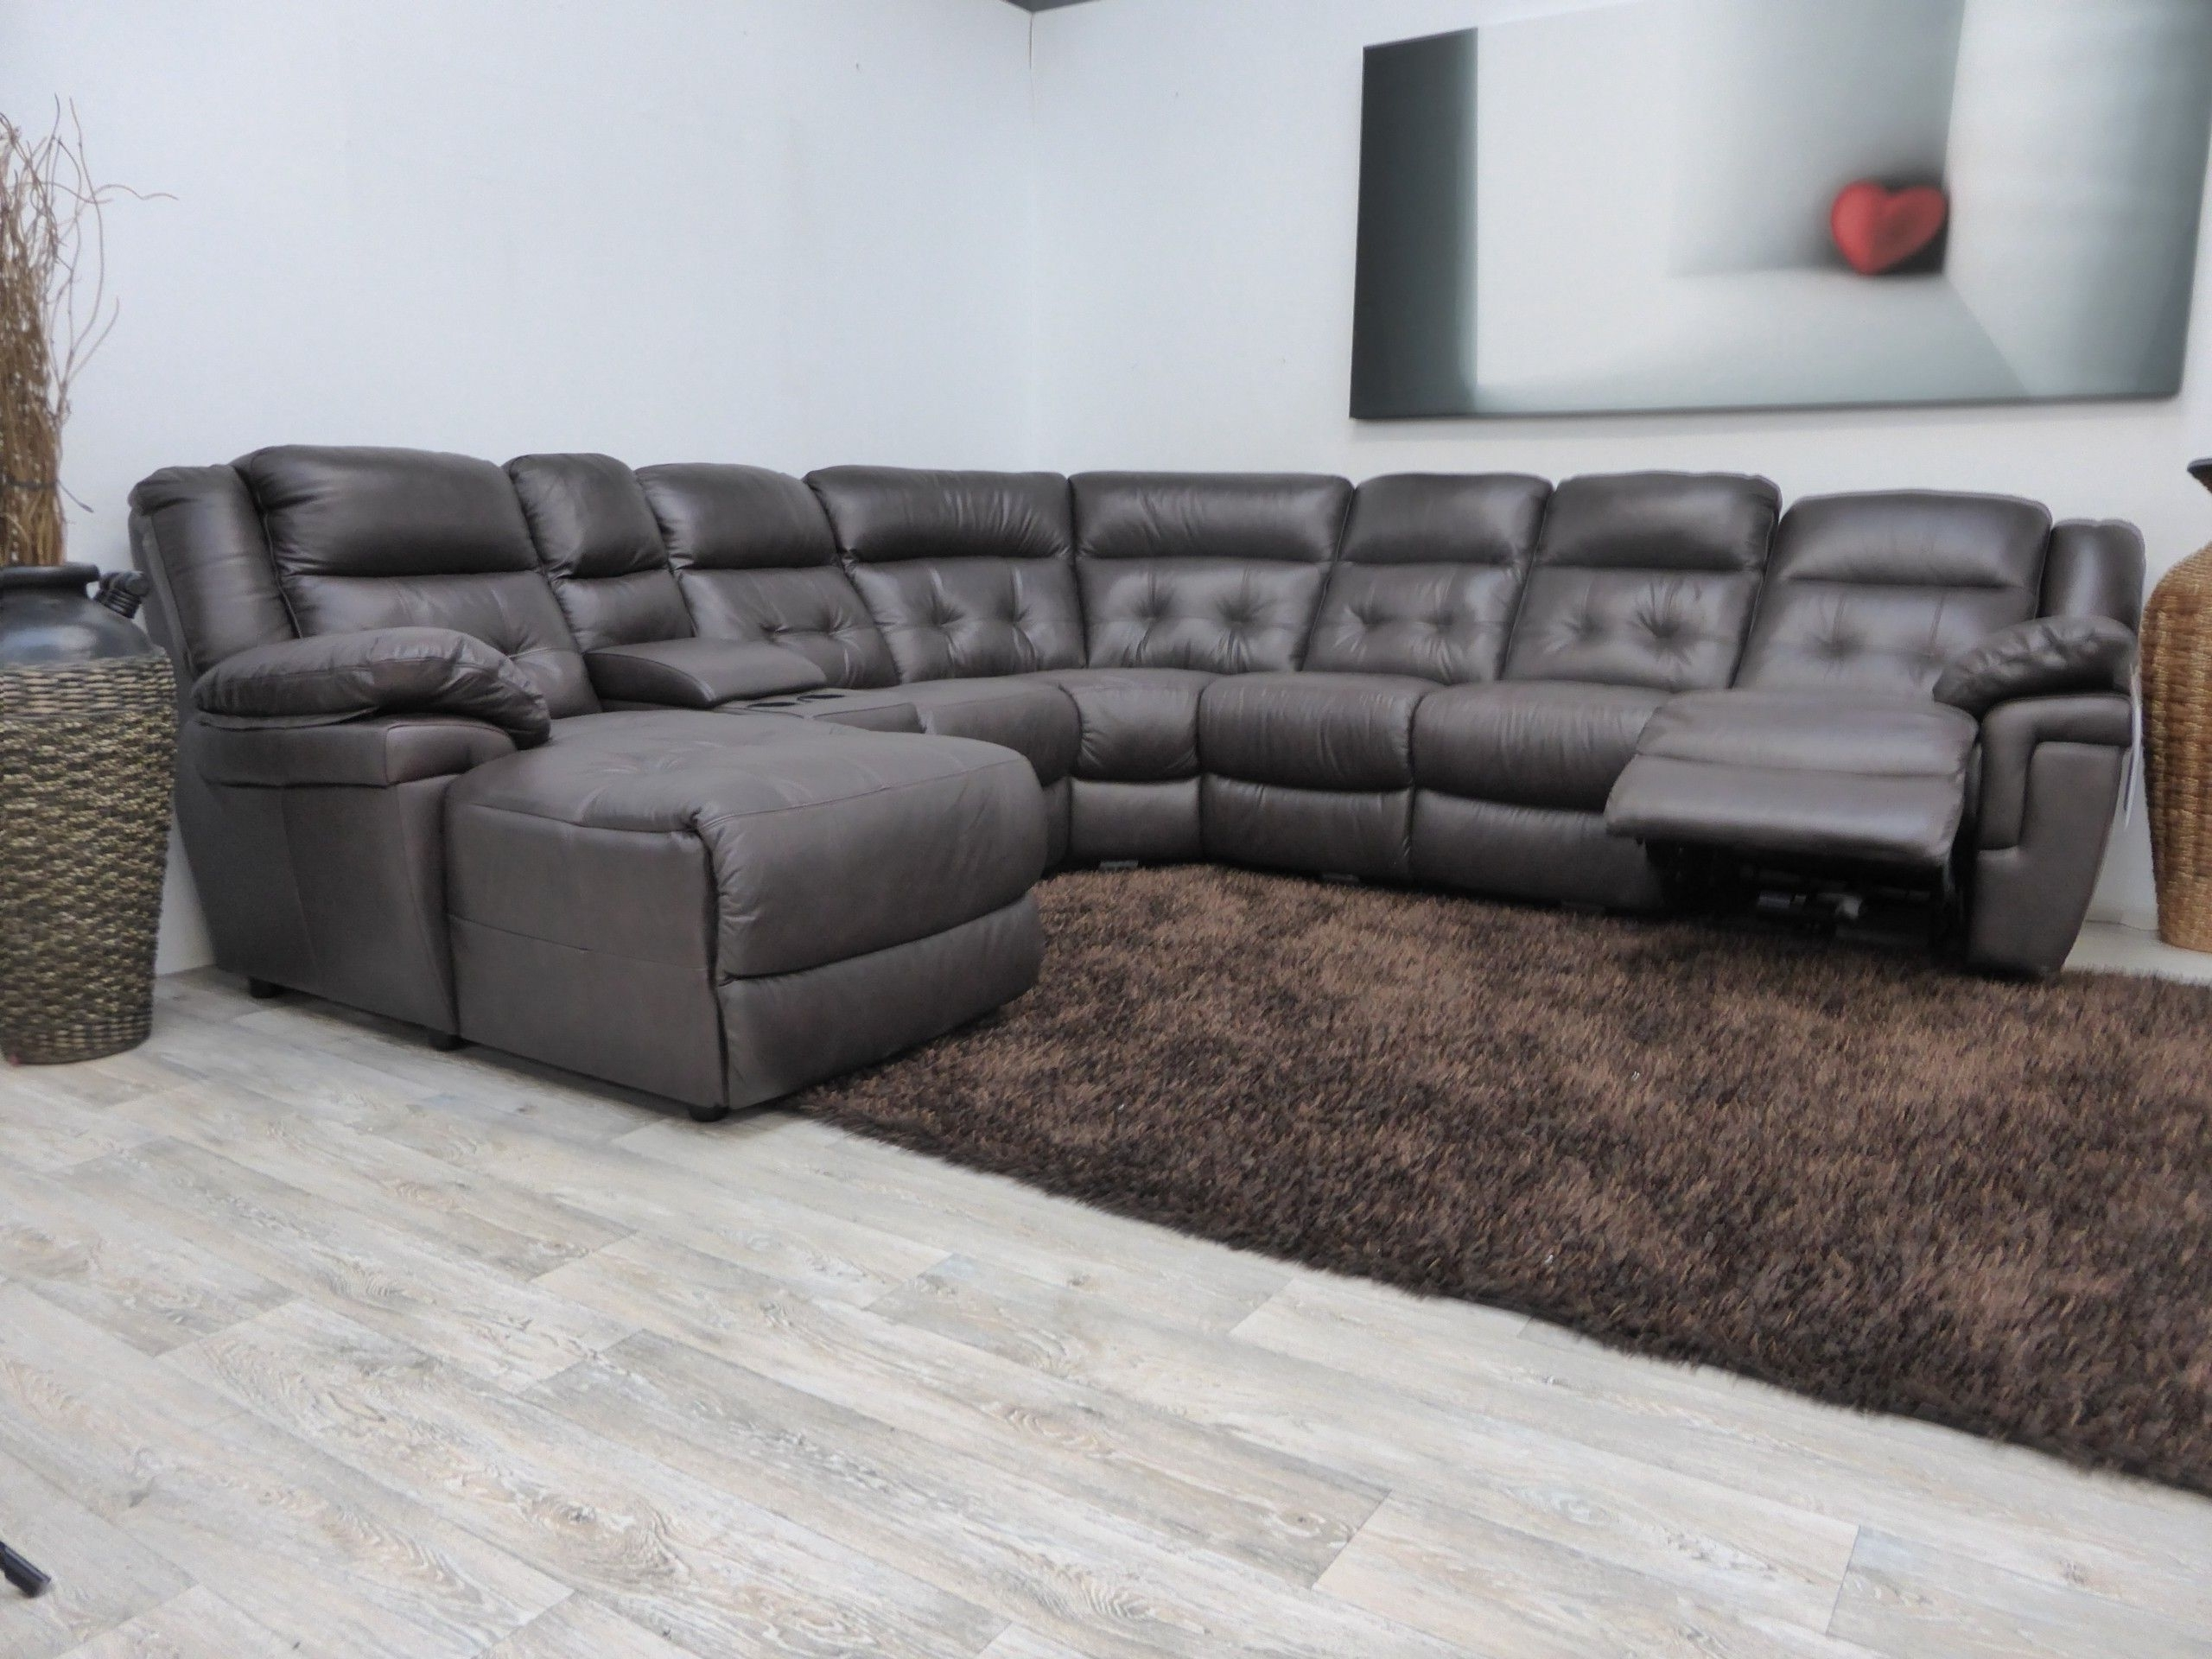 Well Liked L Shaped Sofa Design With Black Upholstery Faux Leather Sofa Regarding Sectional Sofas At Lazy Boy (View 18 of 20)